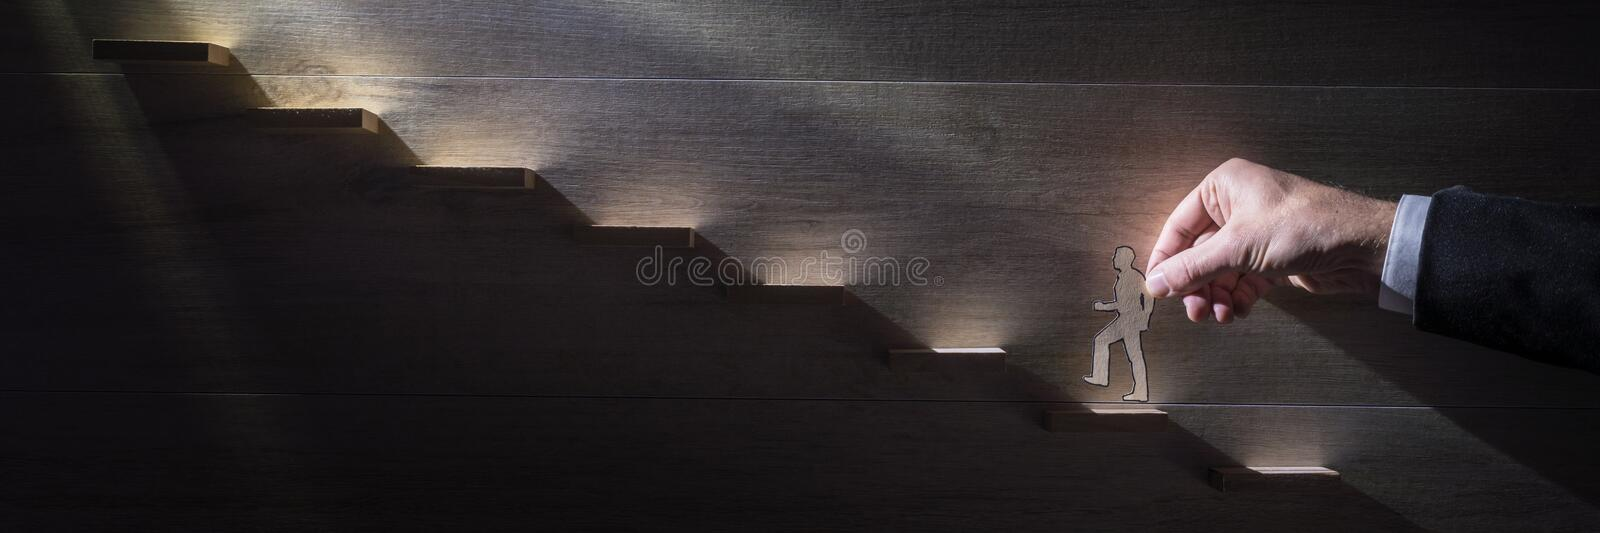 Wide panorama image of a businessman climbing the corporate ladder royalty free stock images